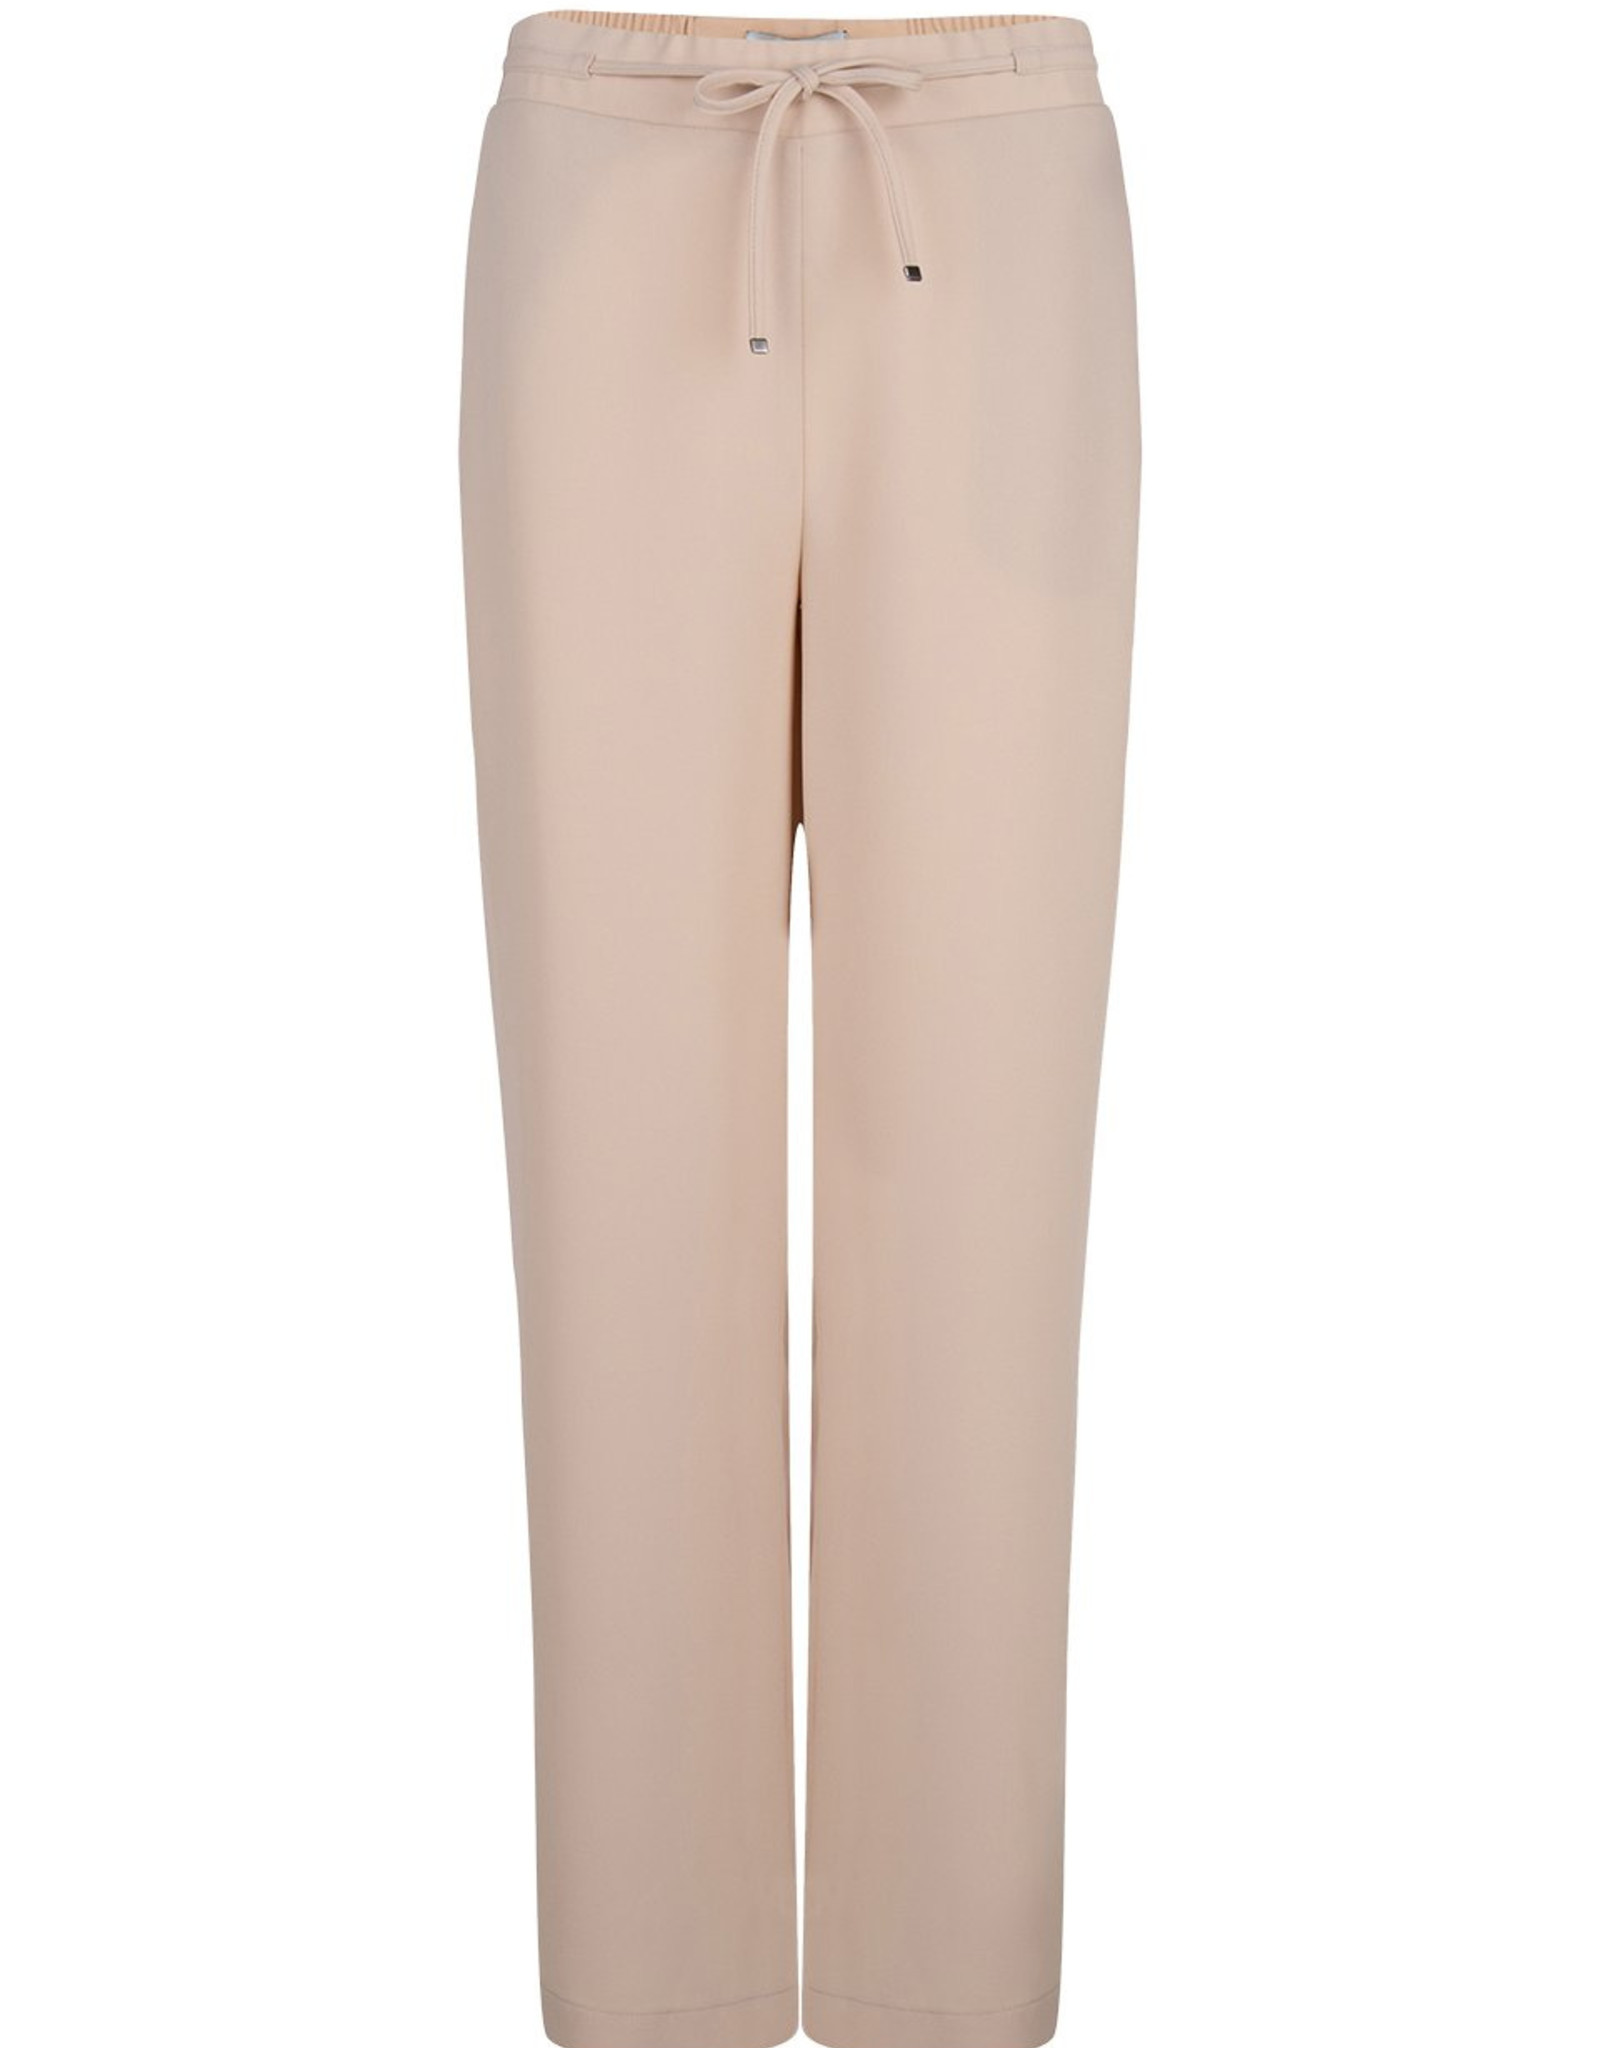 Dante6 Noraly pants